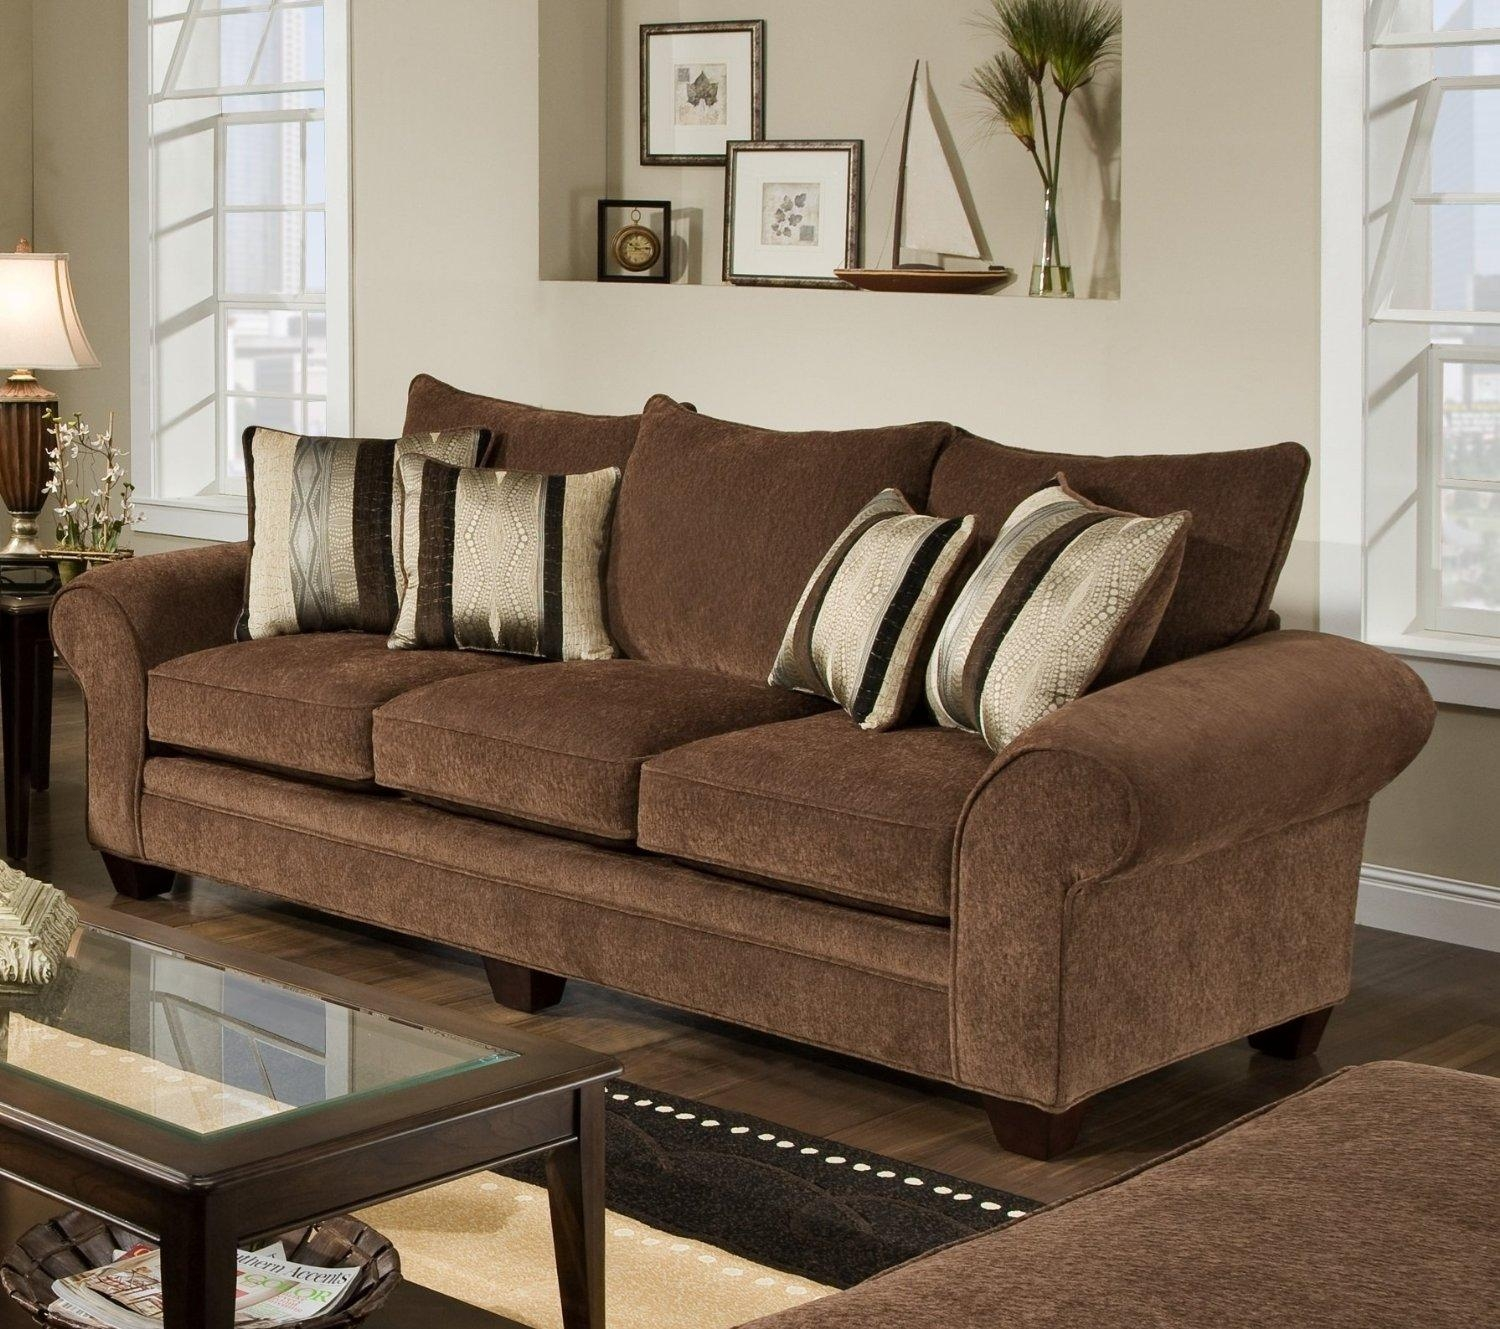 Furniture: Brown Benchcraft Furniture Sofa Decor With Glass And Intended For Benchcraft Leather Sofas (Image 15 of 20)